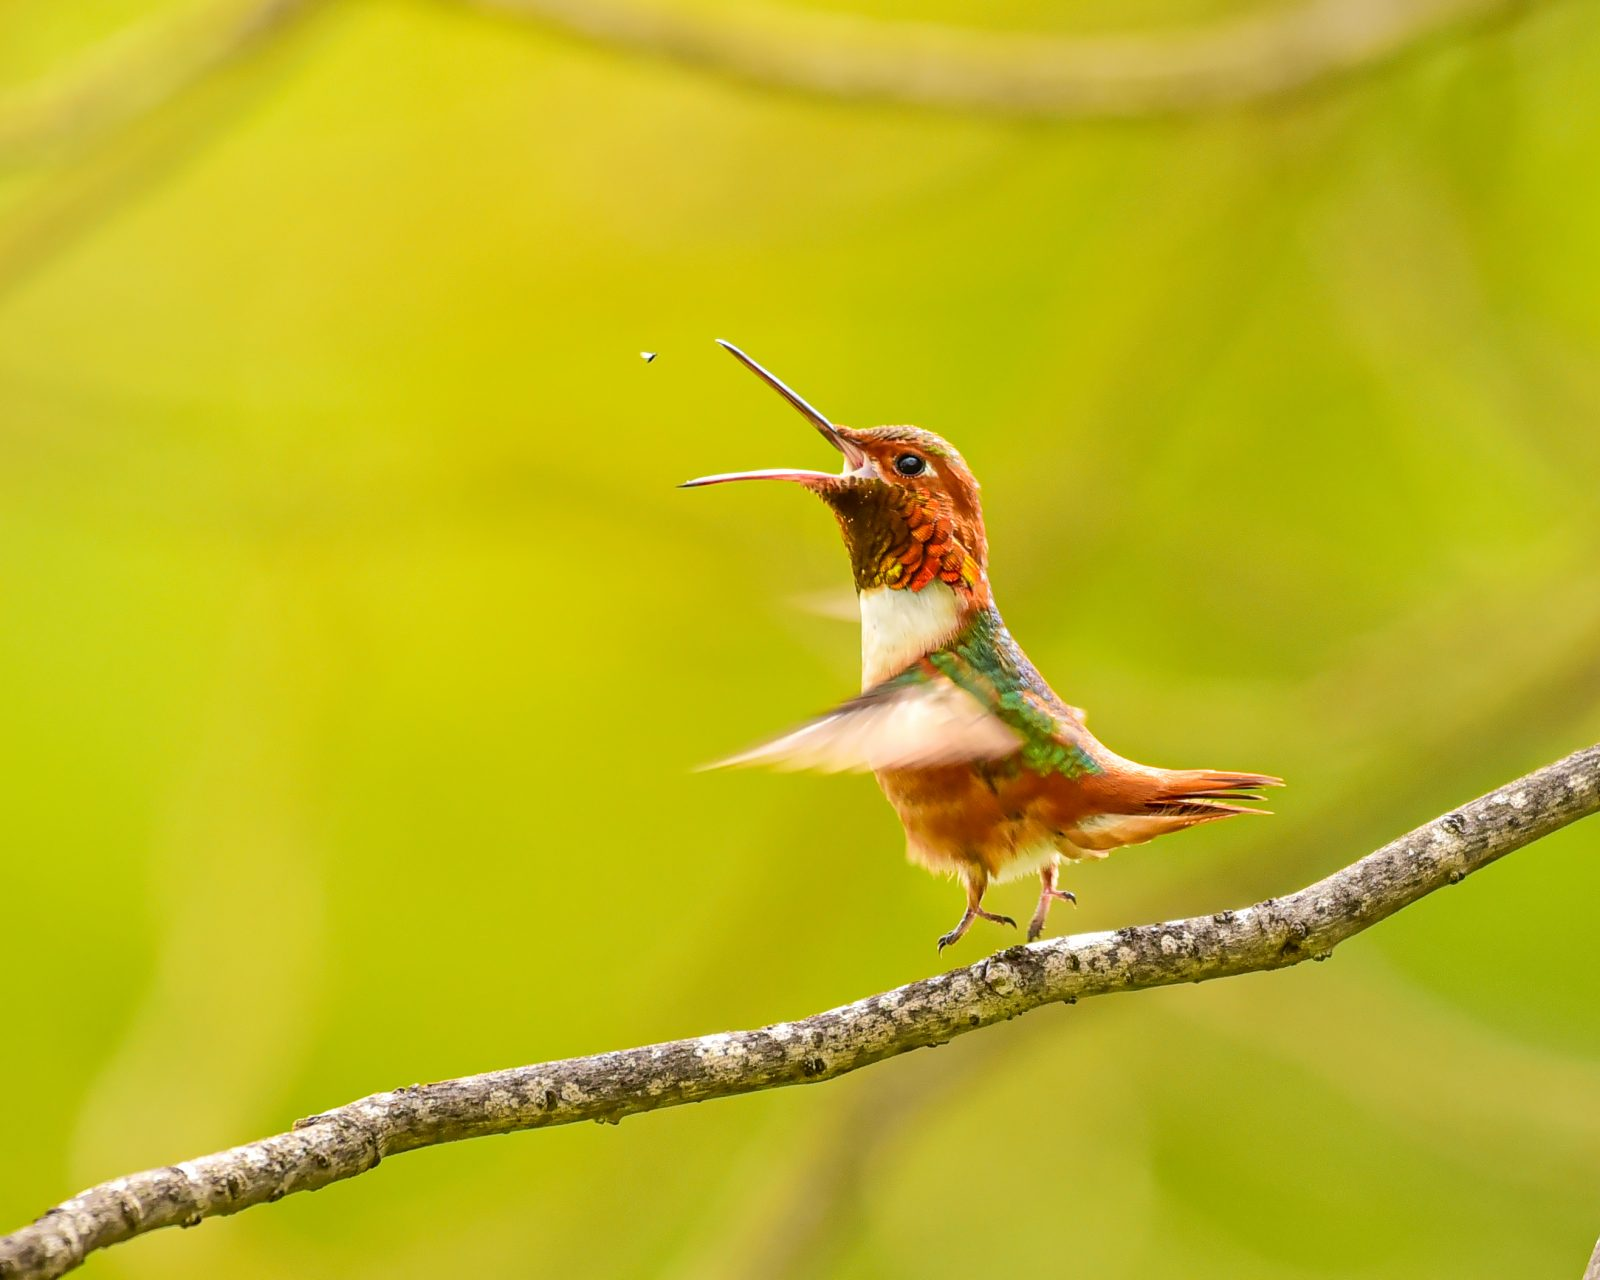 Catching my food (Hummingbird)